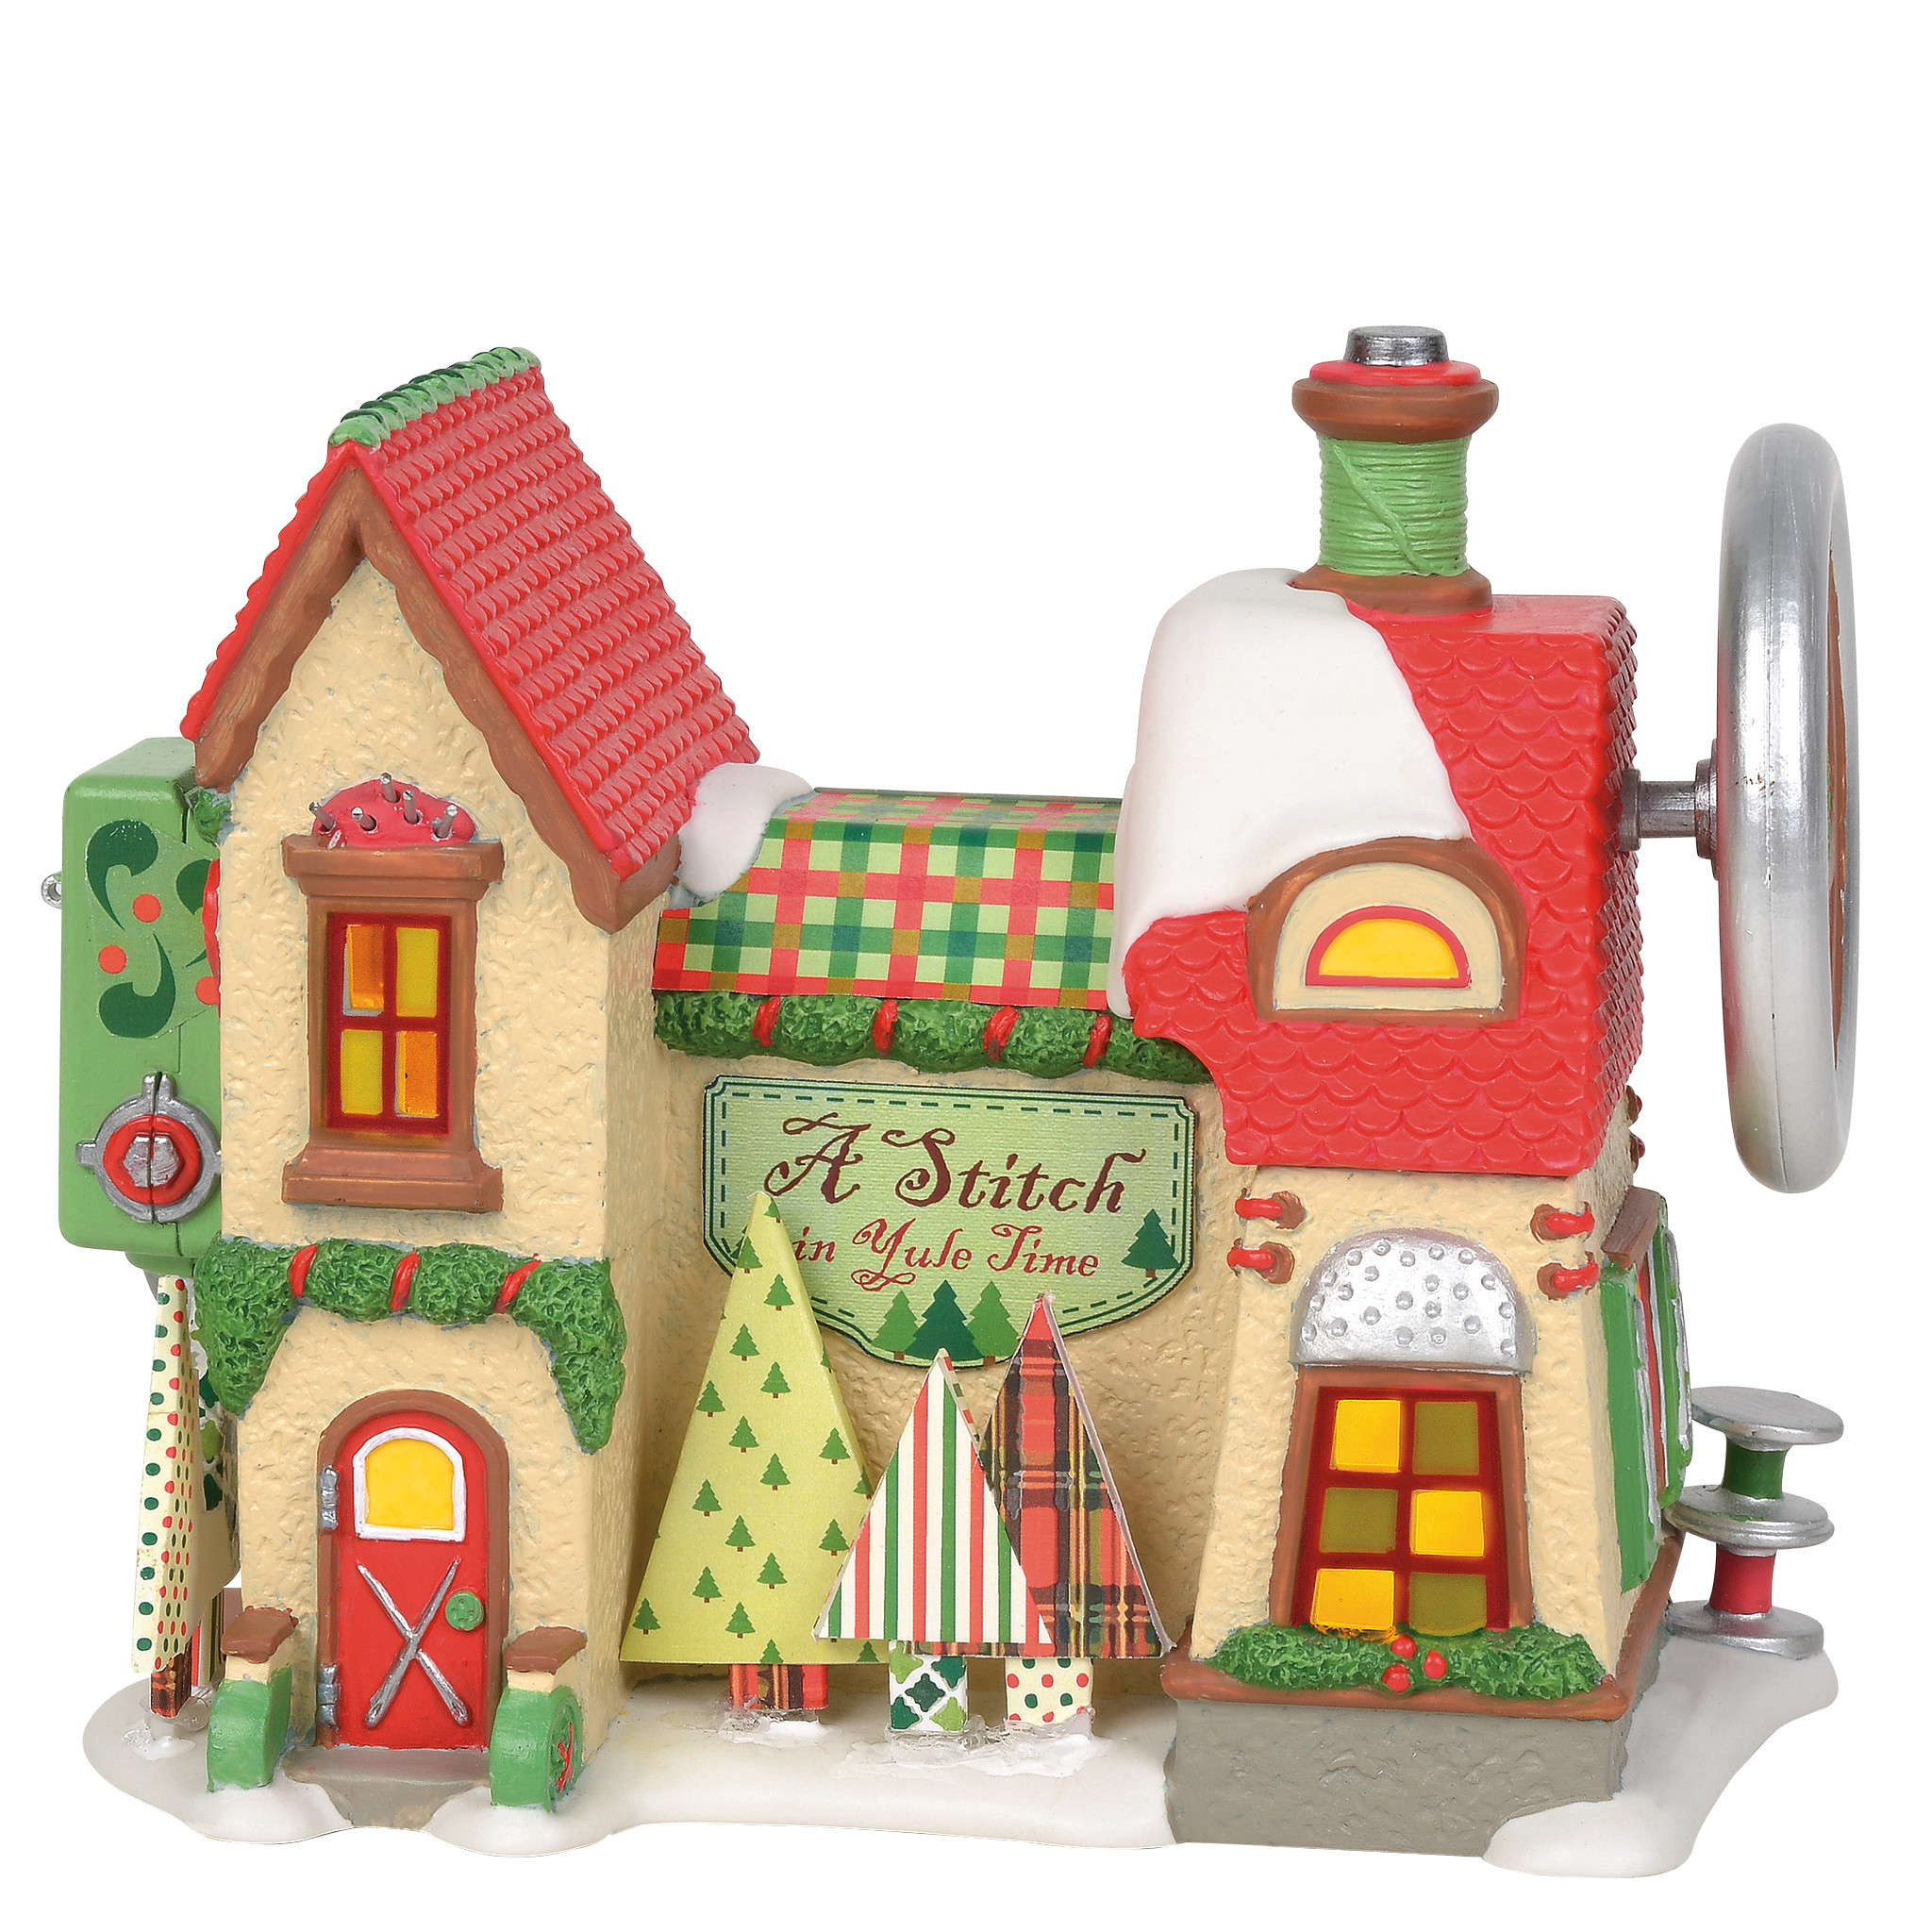 Department 56 ® - Buildings 'A Stitch in Yule Time (Europe) '